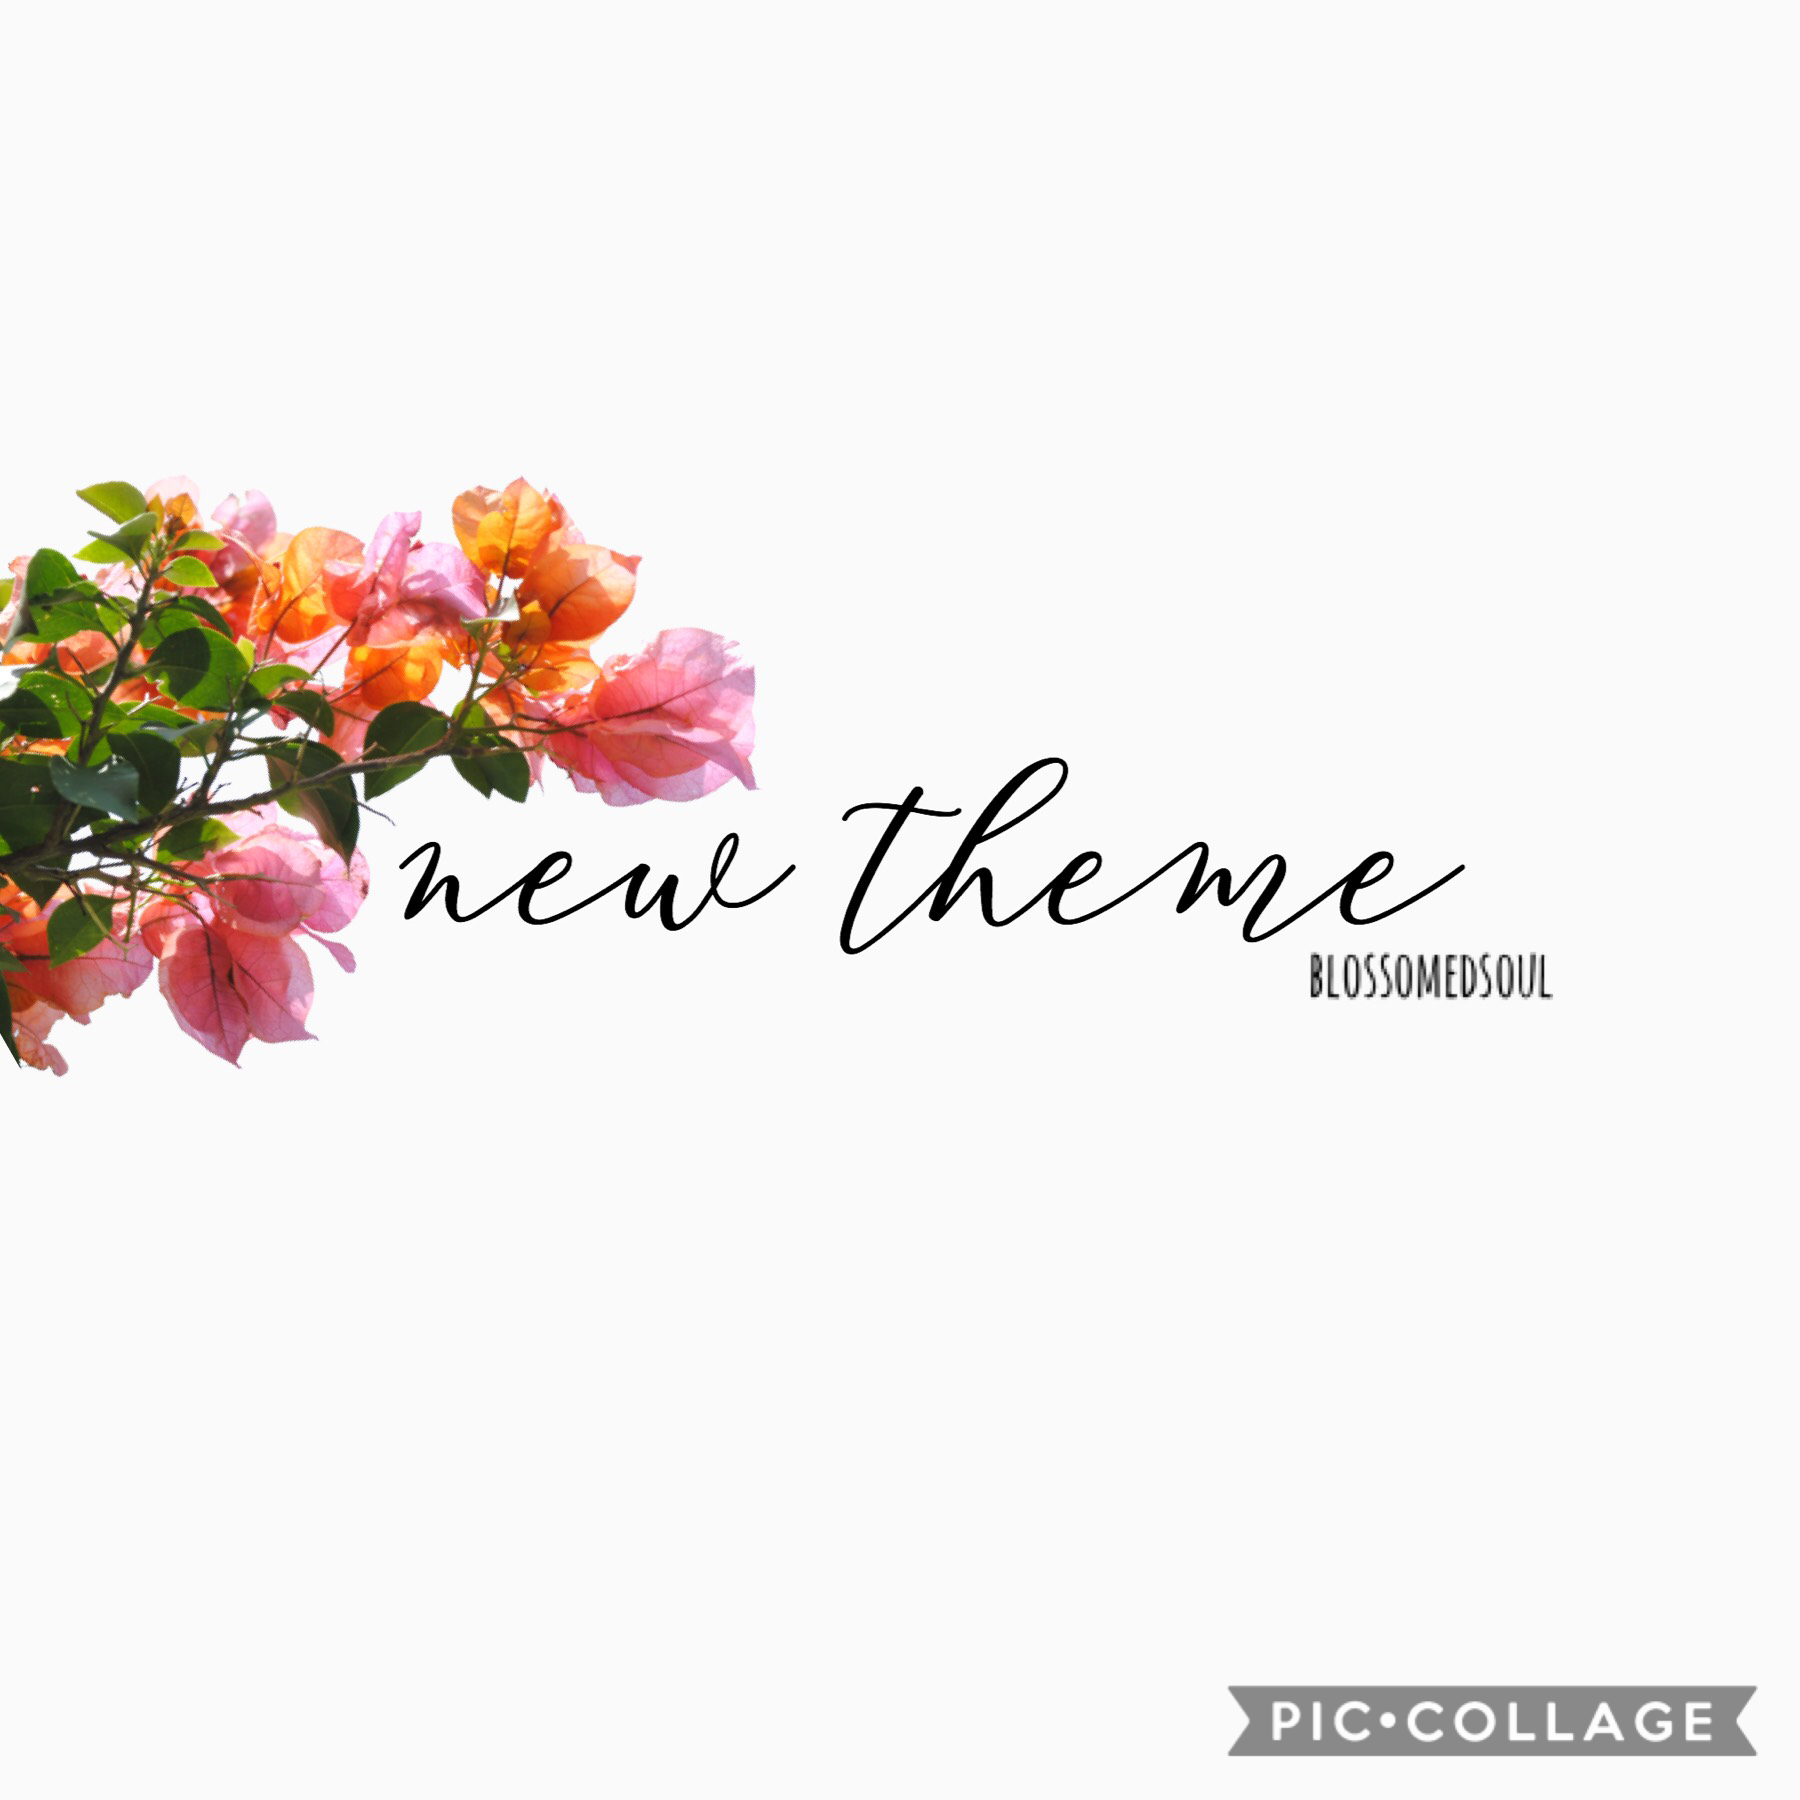 t a p  new theme! i got a little tired of the minimalist one so i'm trying something new ♥️✨🌿